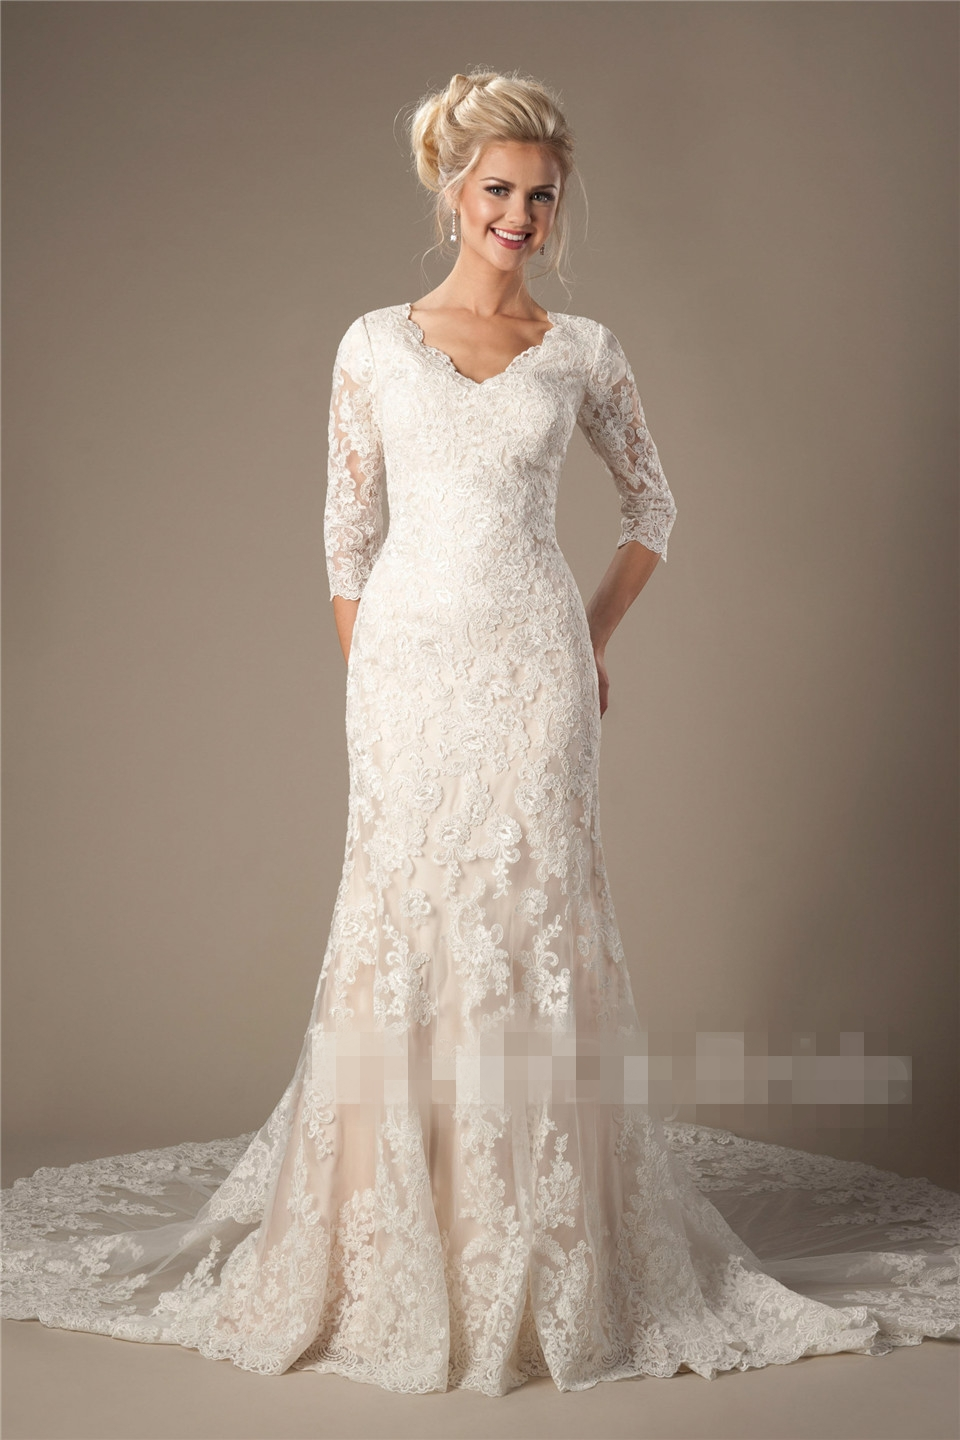 wedding dress 3 4 sleeve vintage champagne mermaid modest wedding dresses with 3 4 9191